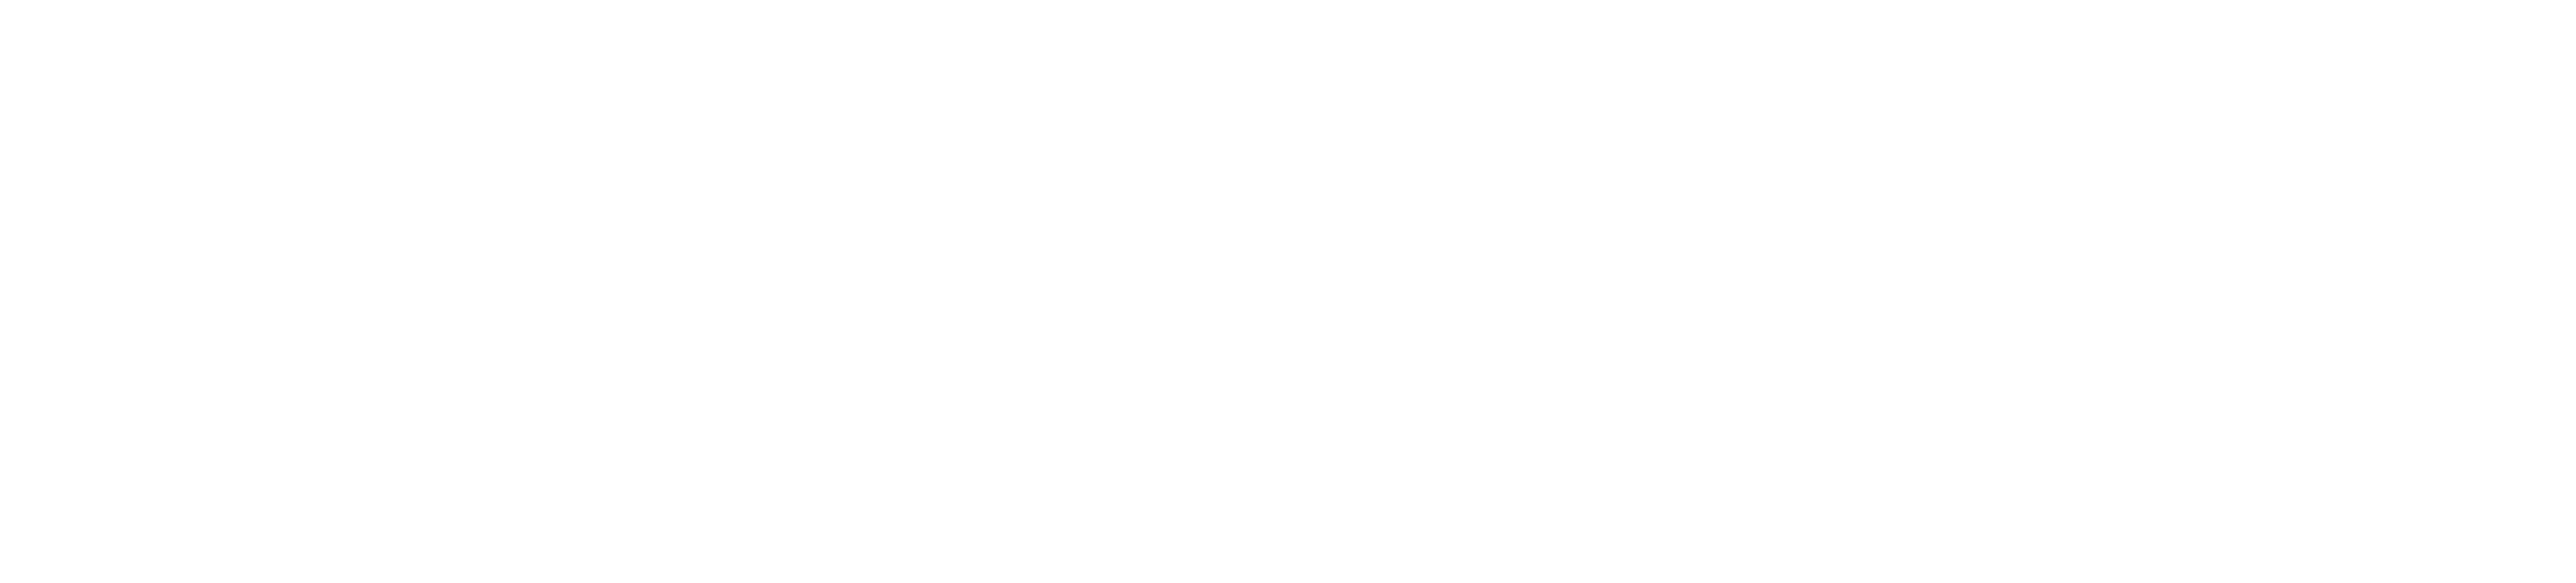 denverbusinessjournal.png